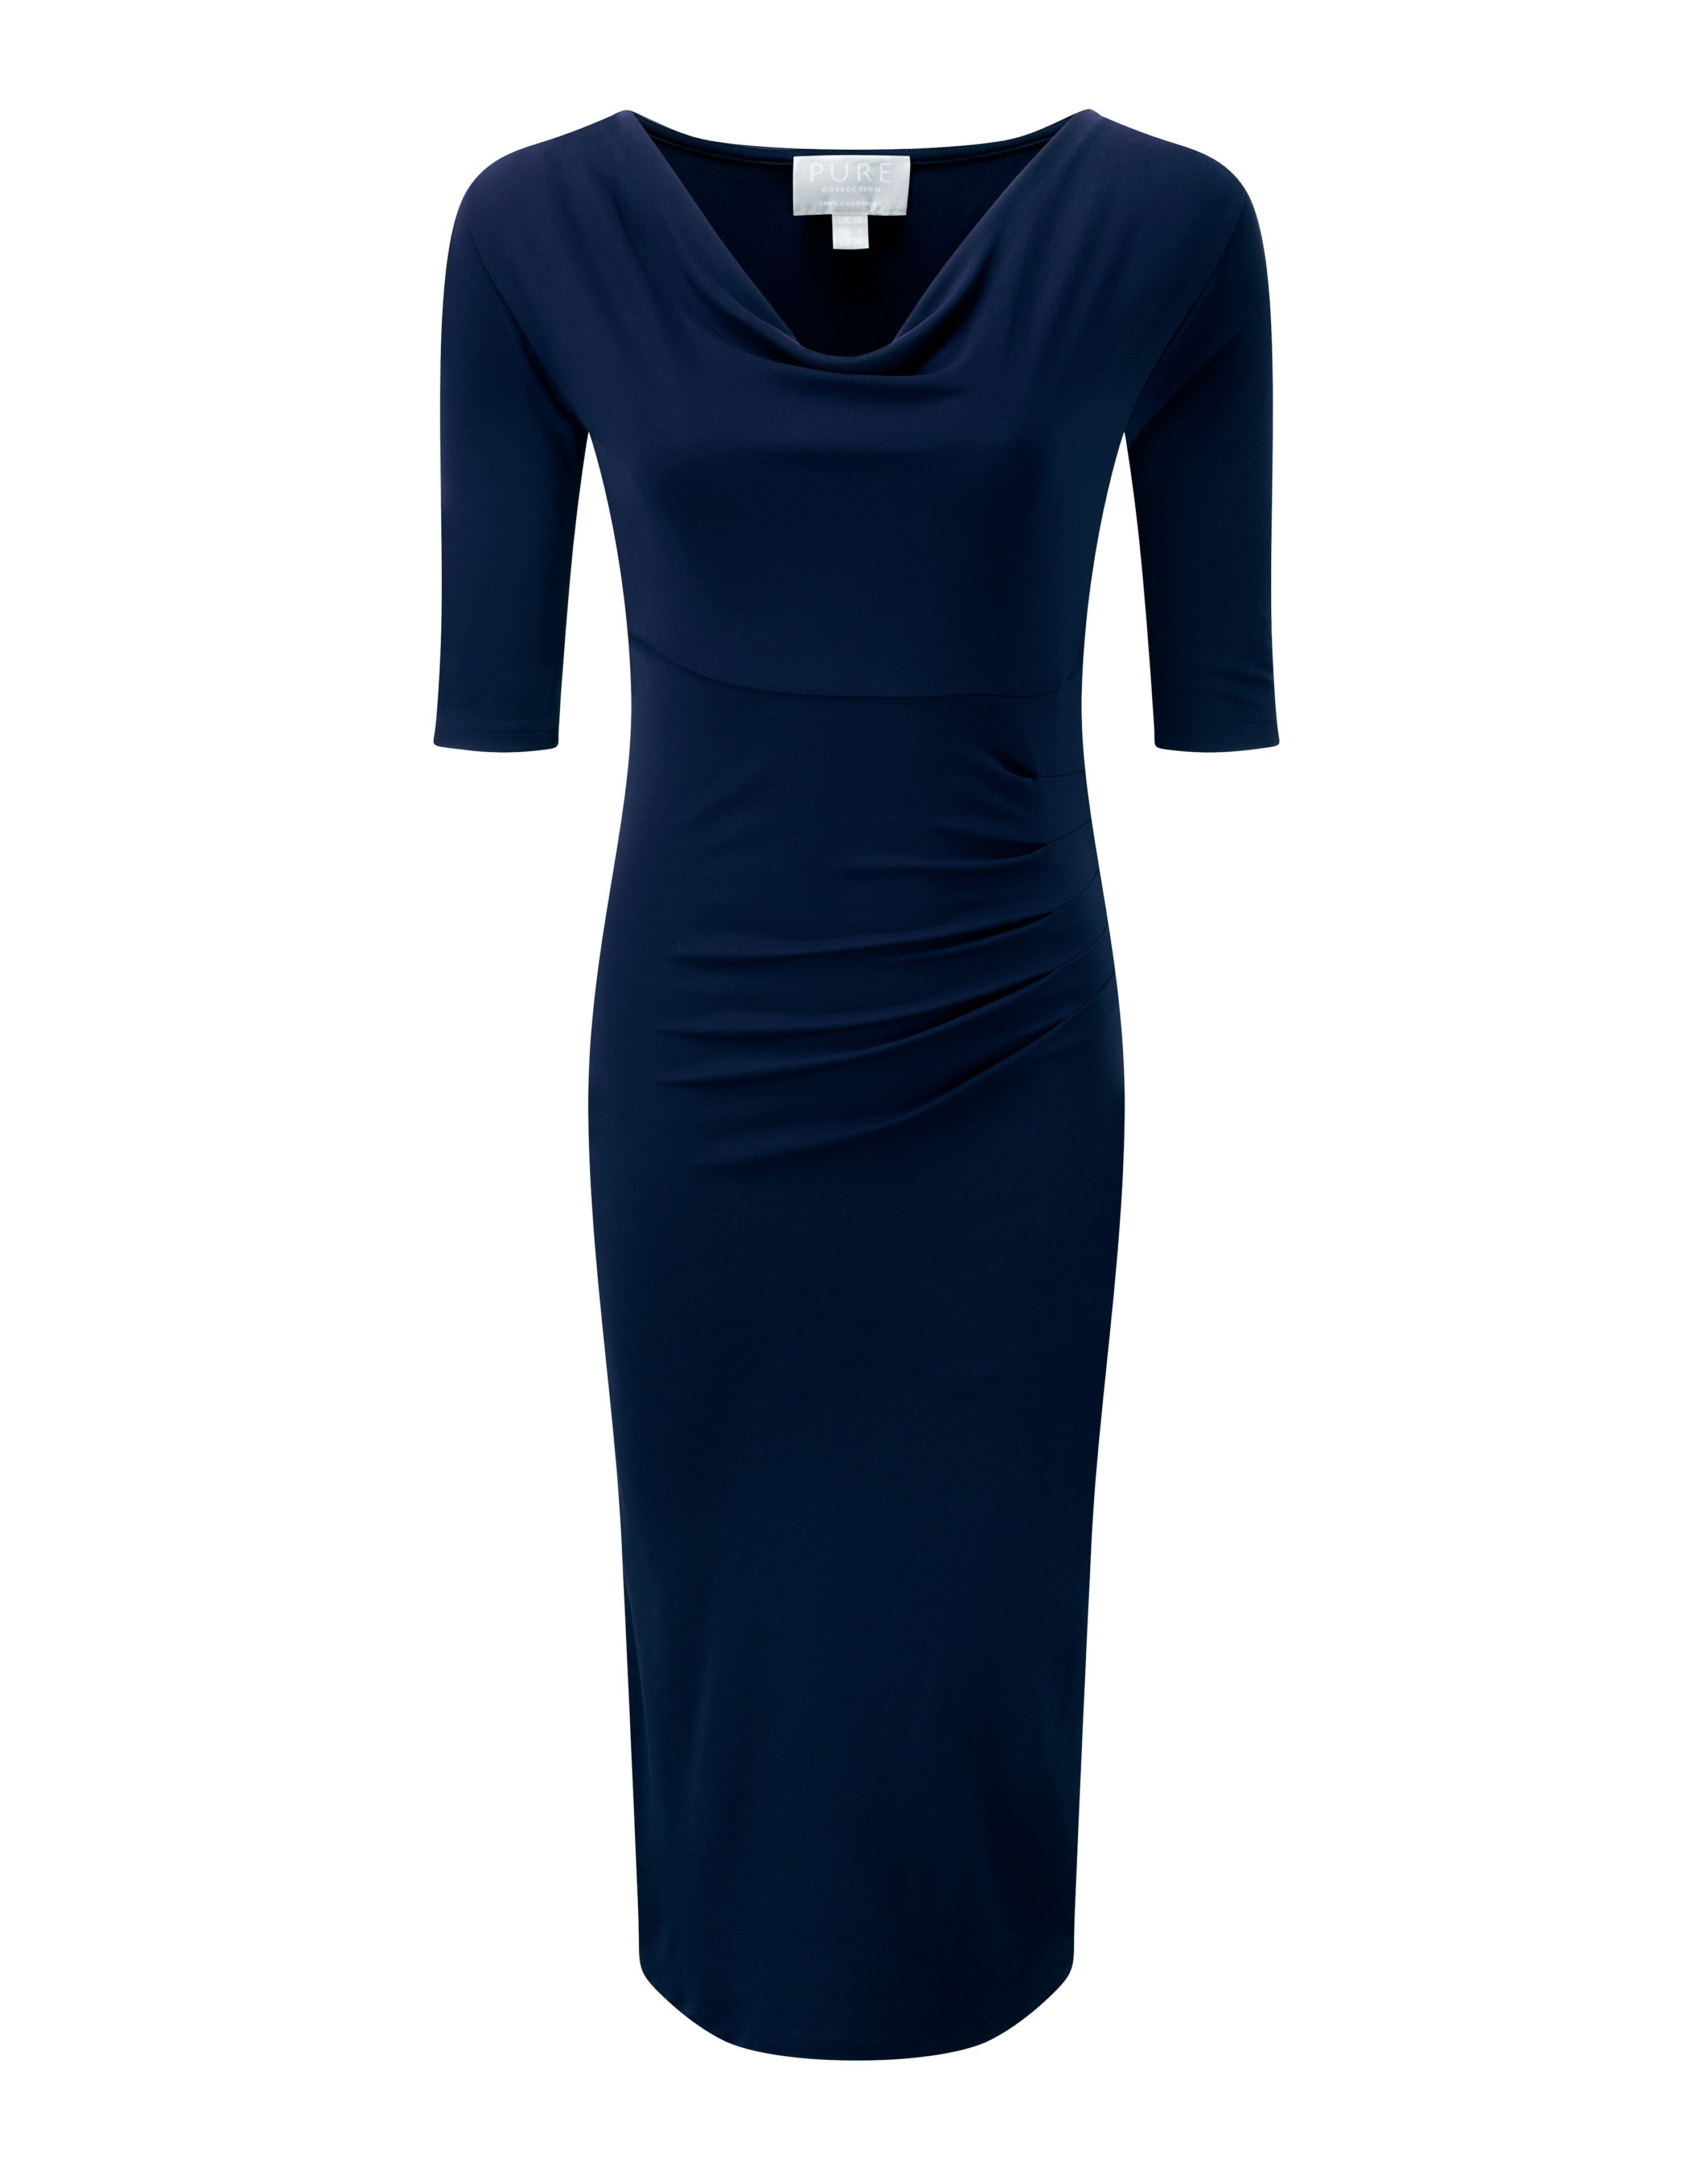 Farb- und Stilberatung mit www.farben-reich.com - It's all about a sophisticated silhouette in French navy this season. Our cowl neck dress is carefully designed to fit and flatter all shapes. Featuring...